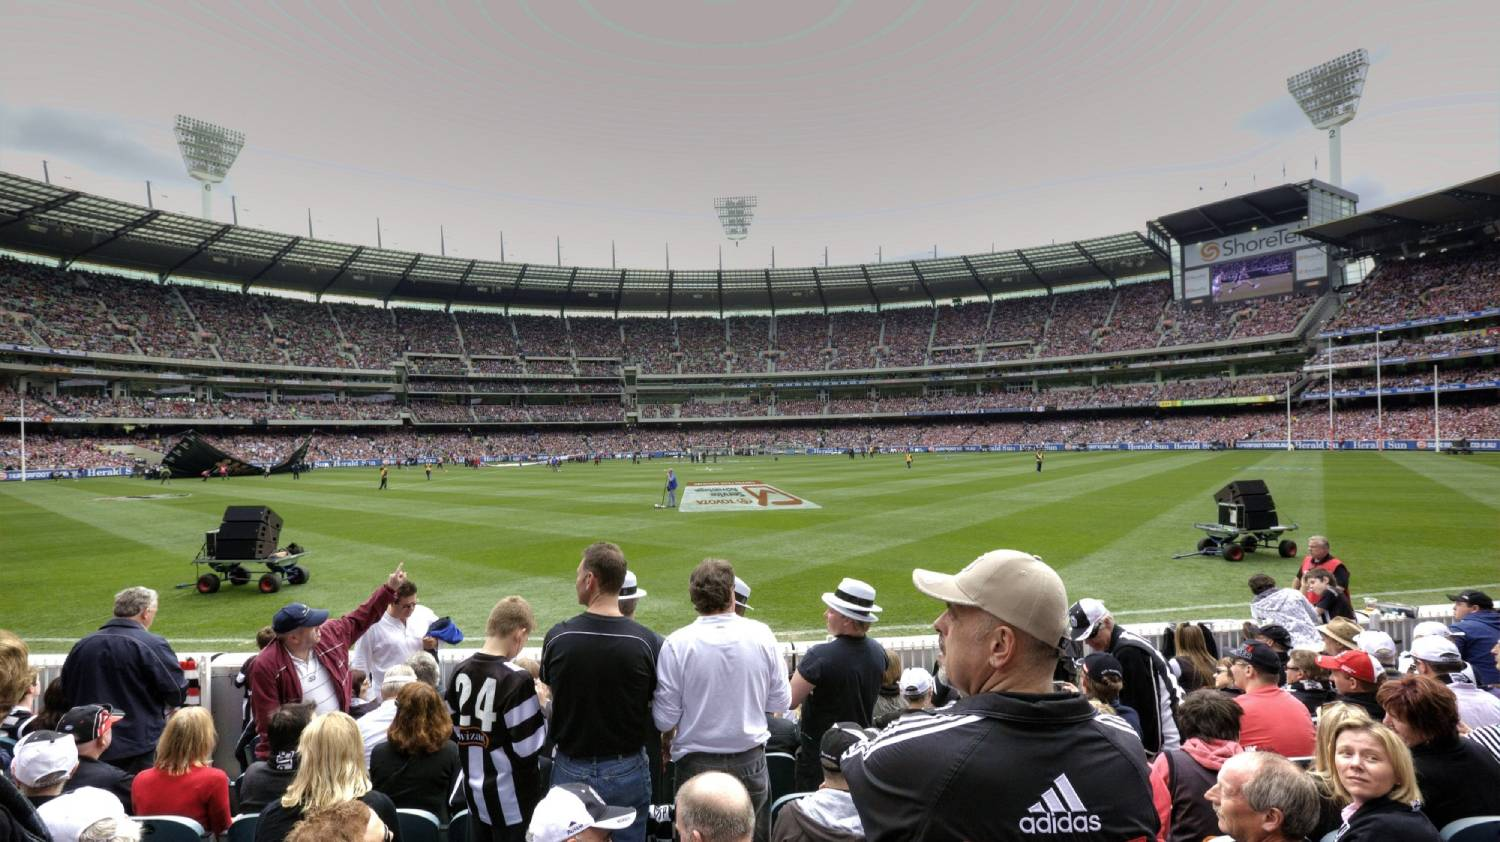 Melbourne Cricket Ground (MCG) - Things To Do In Melbourne